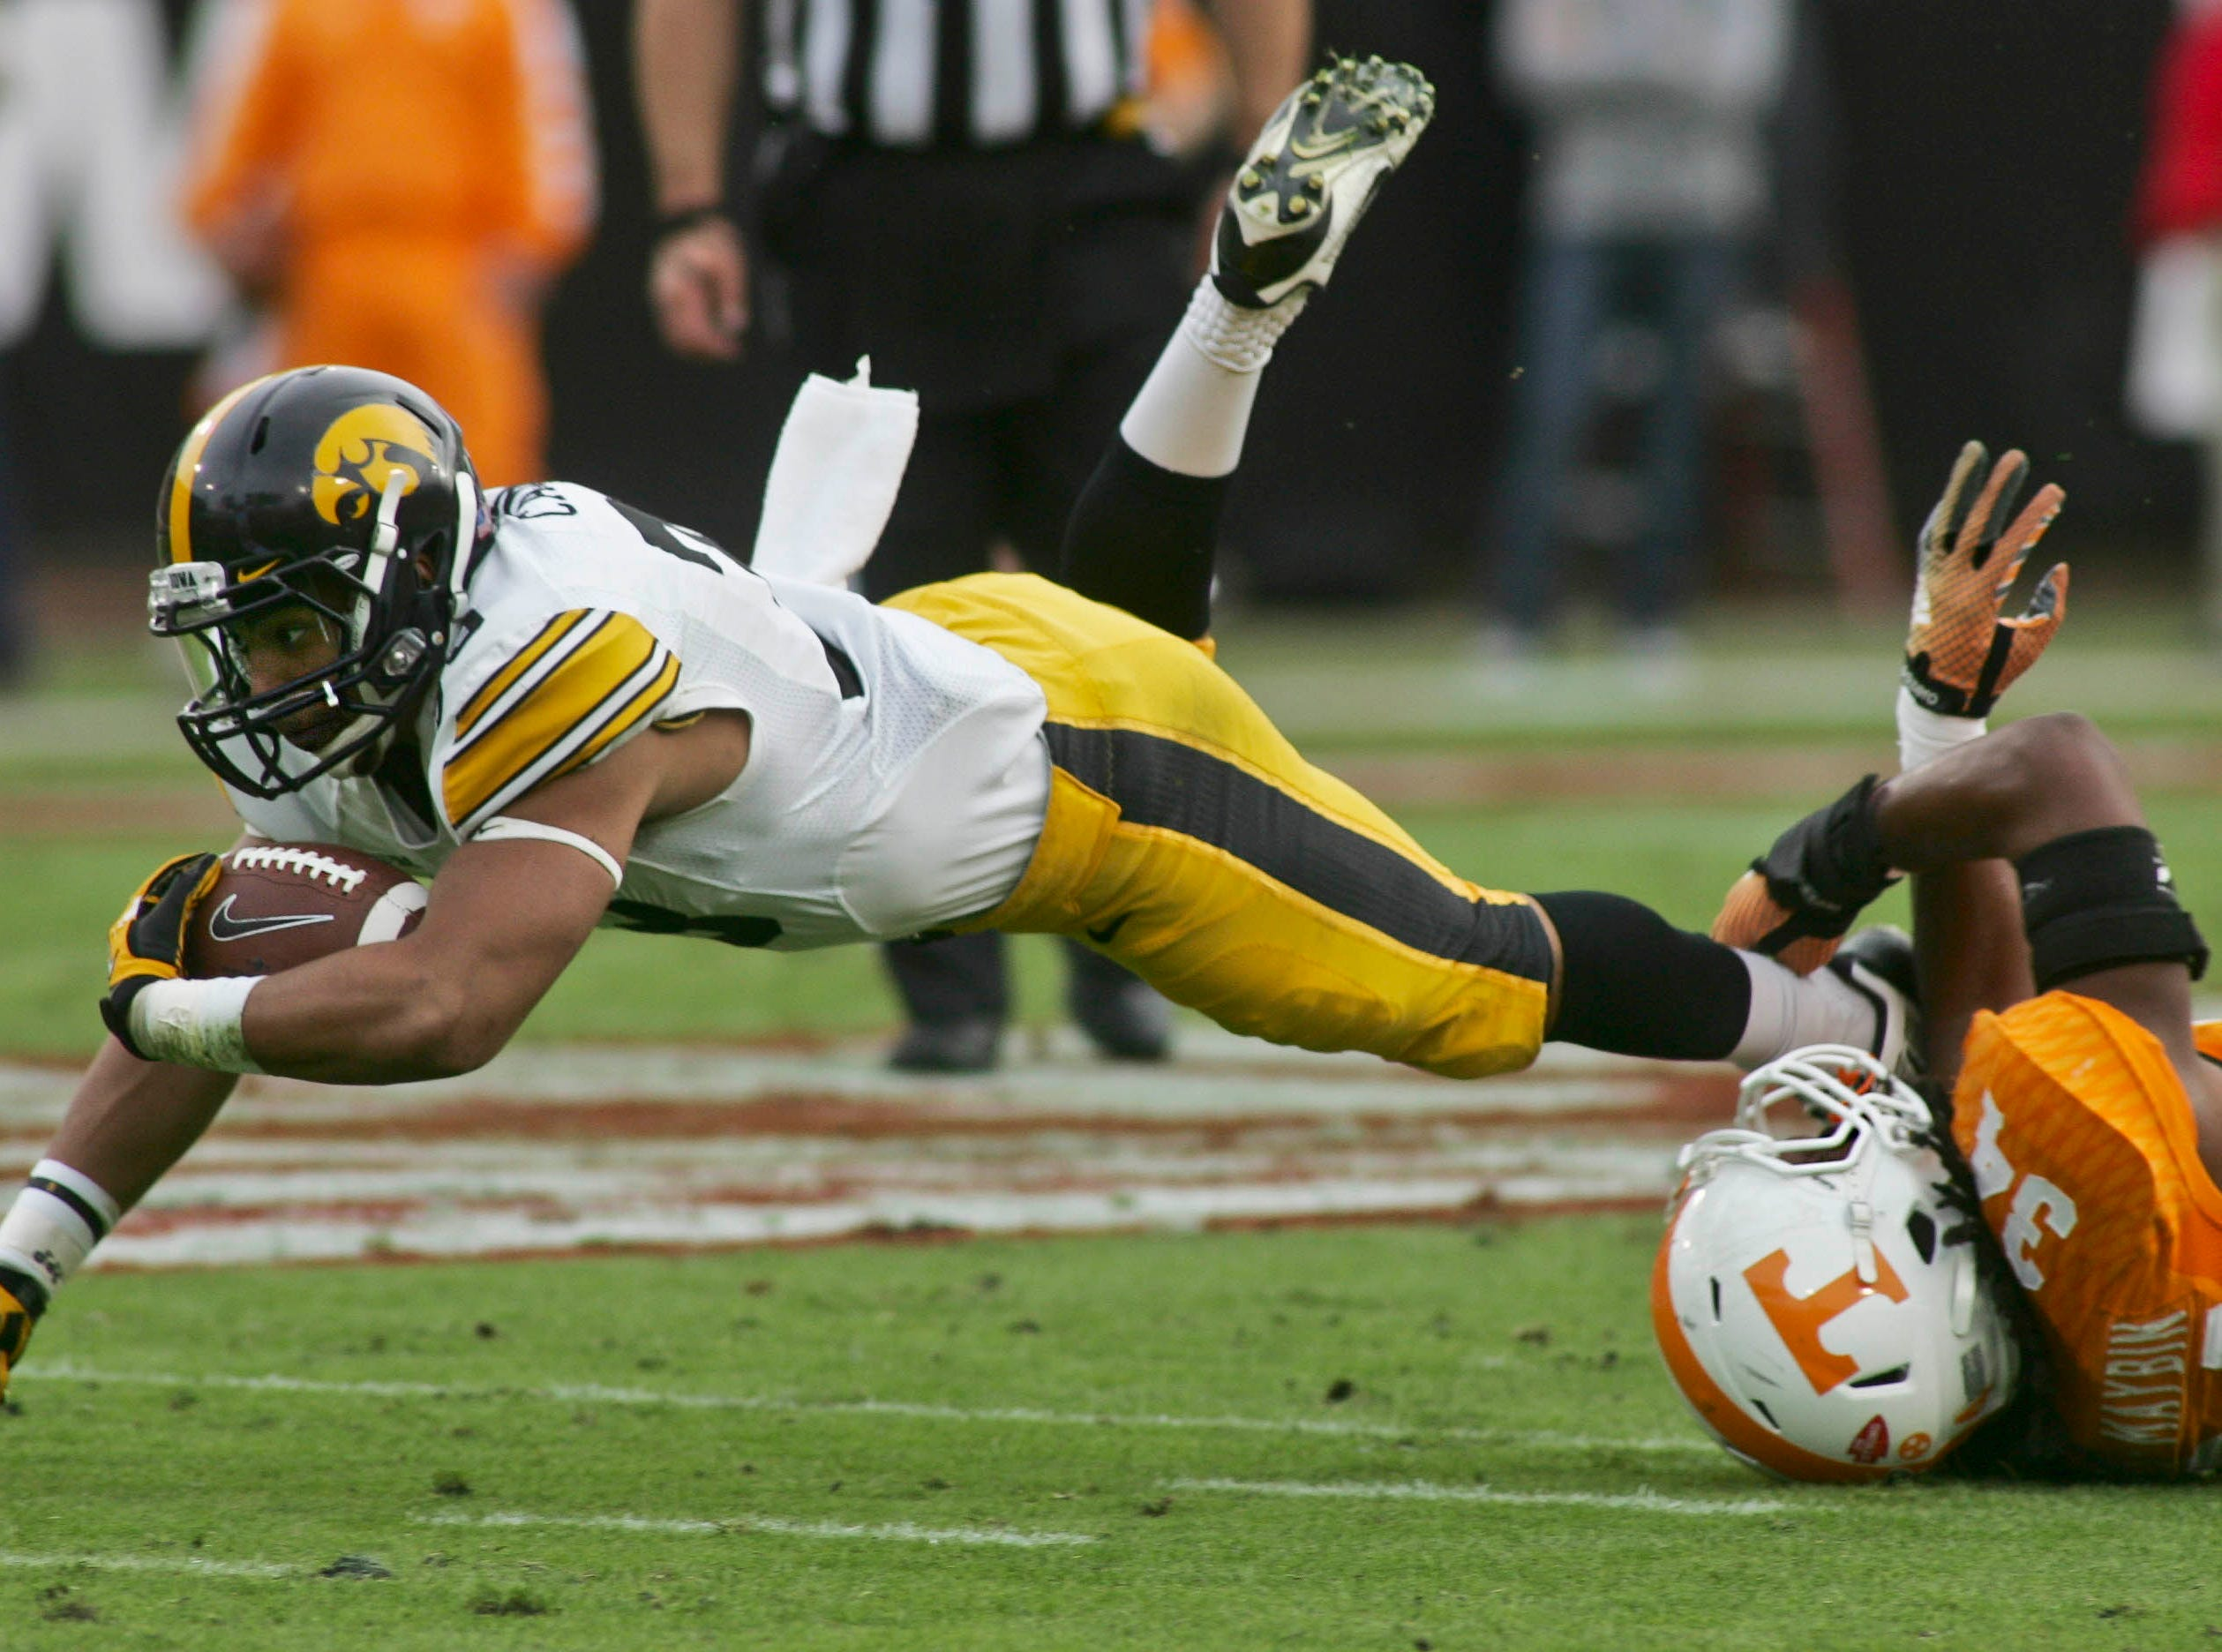 Jan 2, 2015; Jacksonville, FL, USA; Iowa Hawkeyes running back Jordan Canzeri (33) dives for extra yardage as he is tripped up by Tennessee Volunteers linebacker Jalen Reeves-Maybin (34) in the first quarter of their 2015 TaxSlayer Bowl at EverBank Field. Mandatory Credit: Phil Sears-USA TODAY Sports